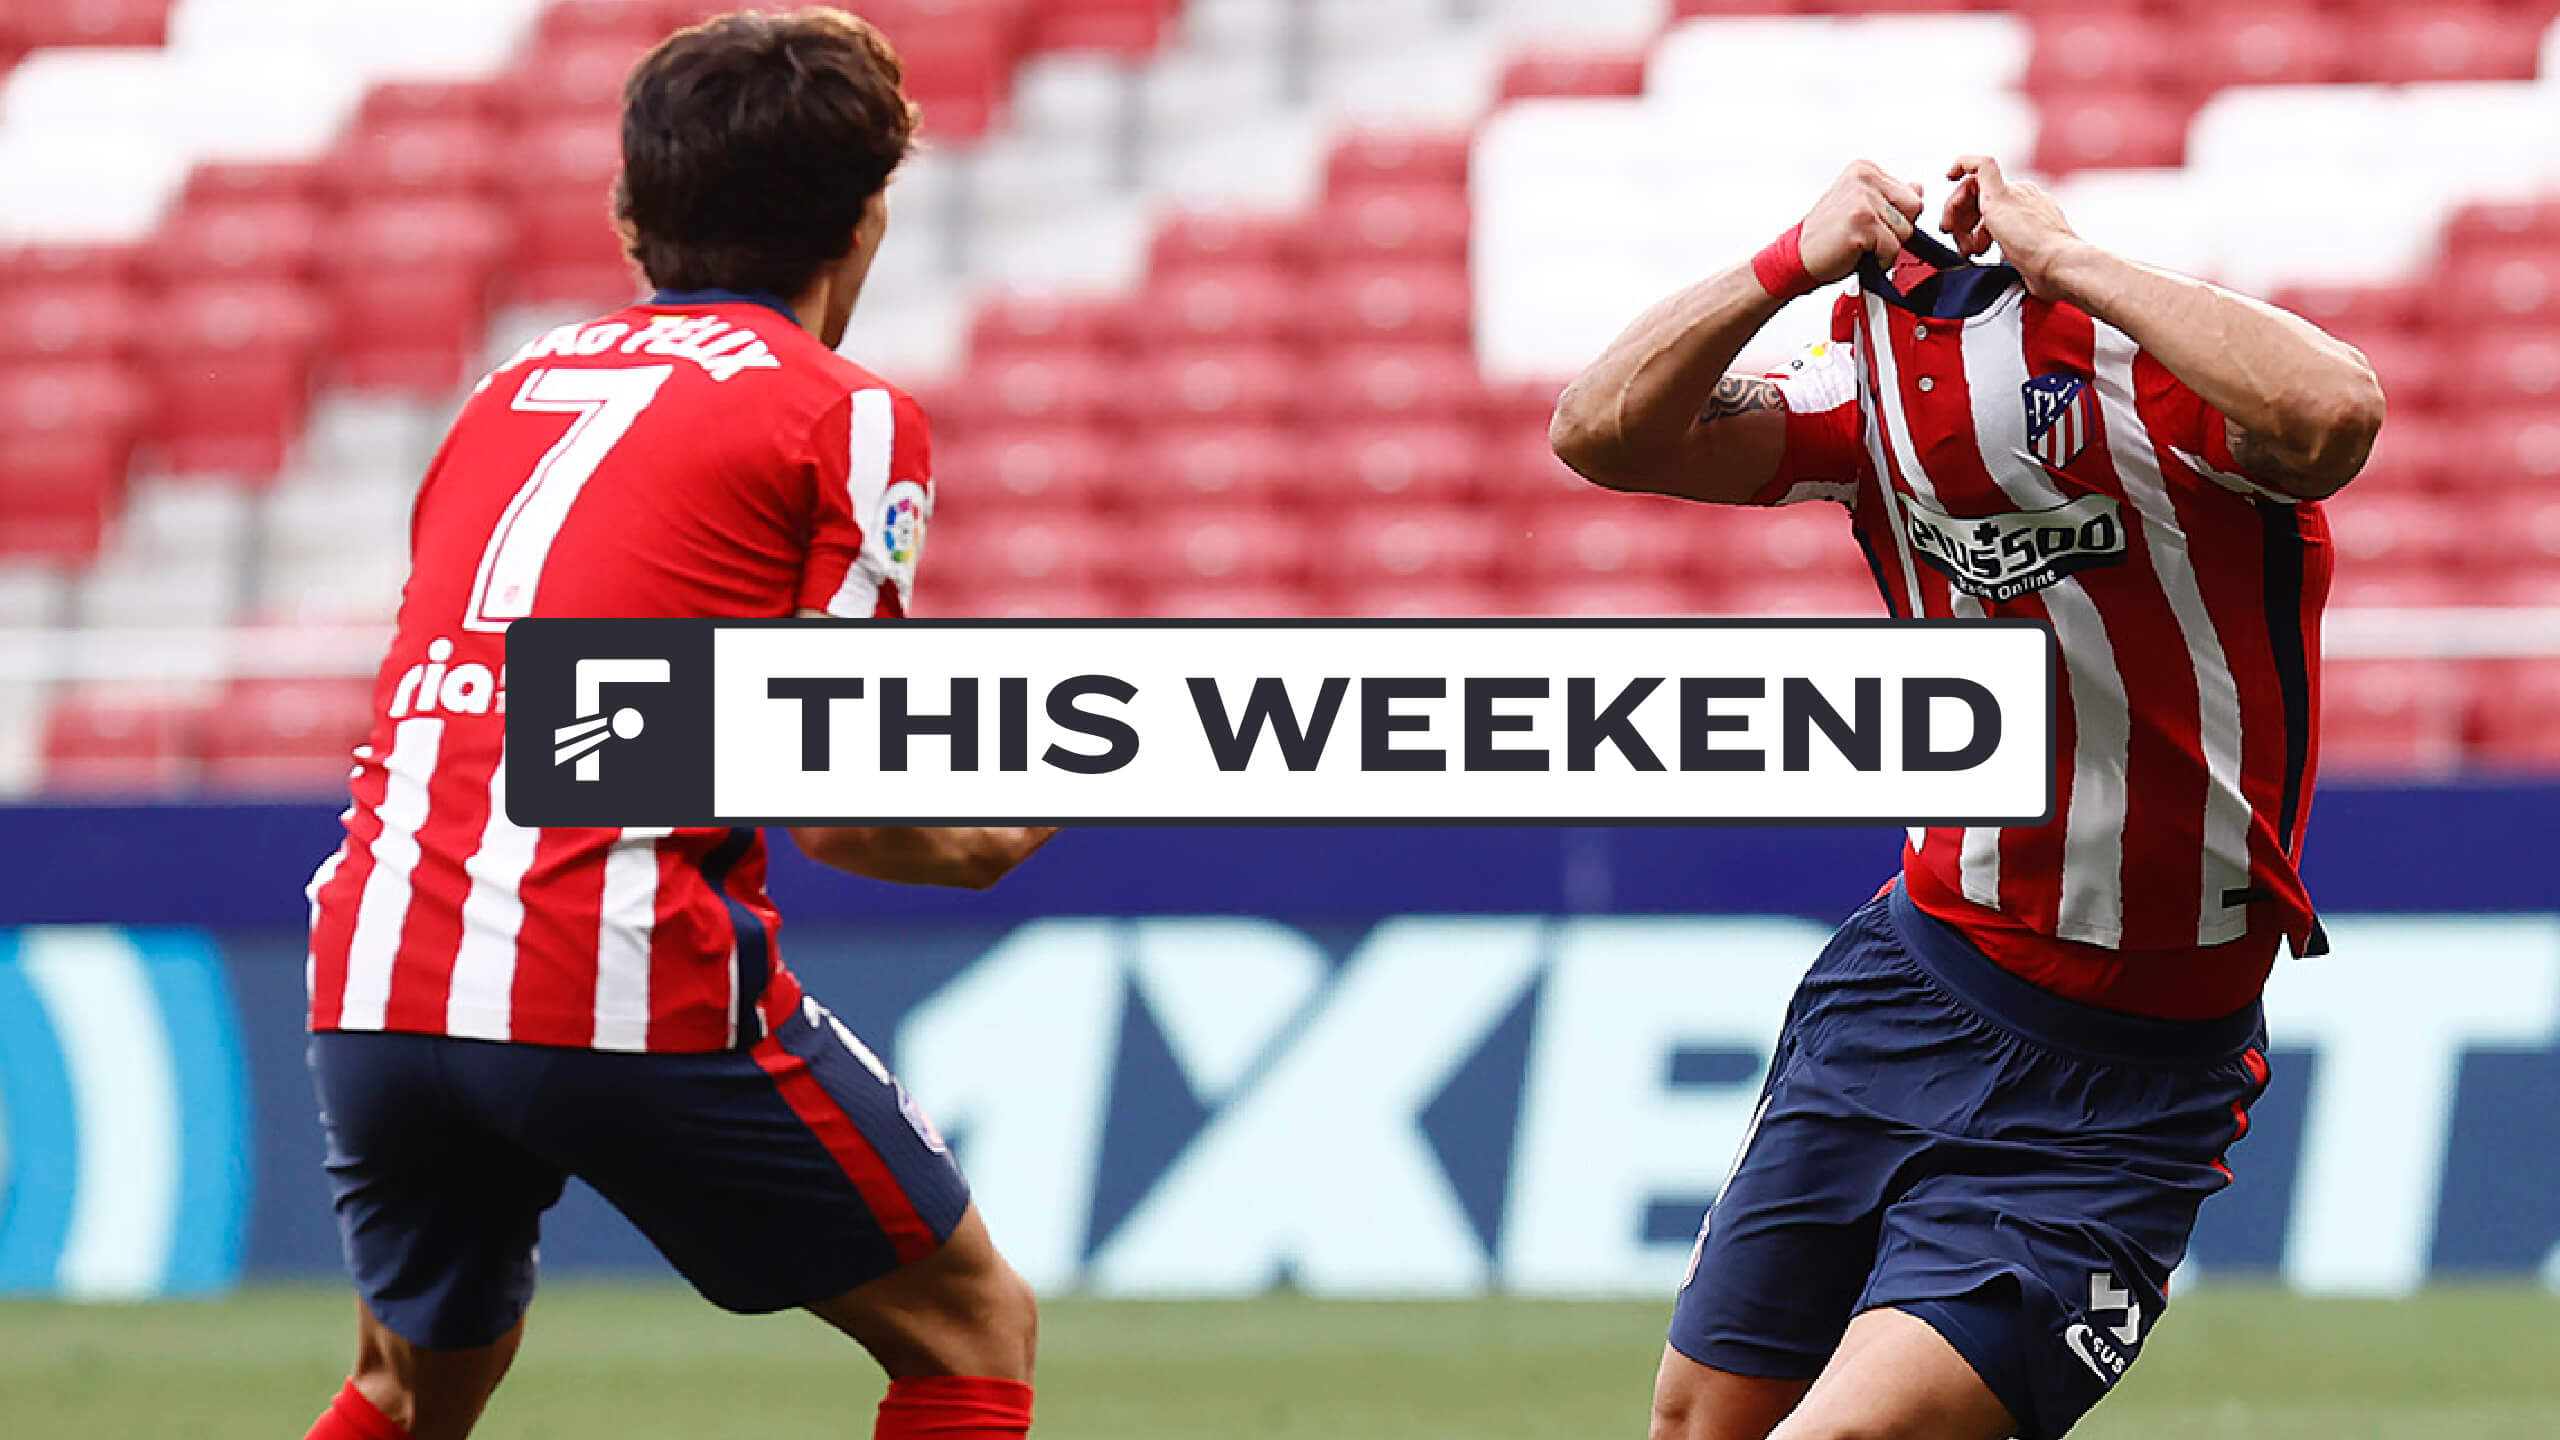 This Weekend: Final round drama in the Big 5 leagues